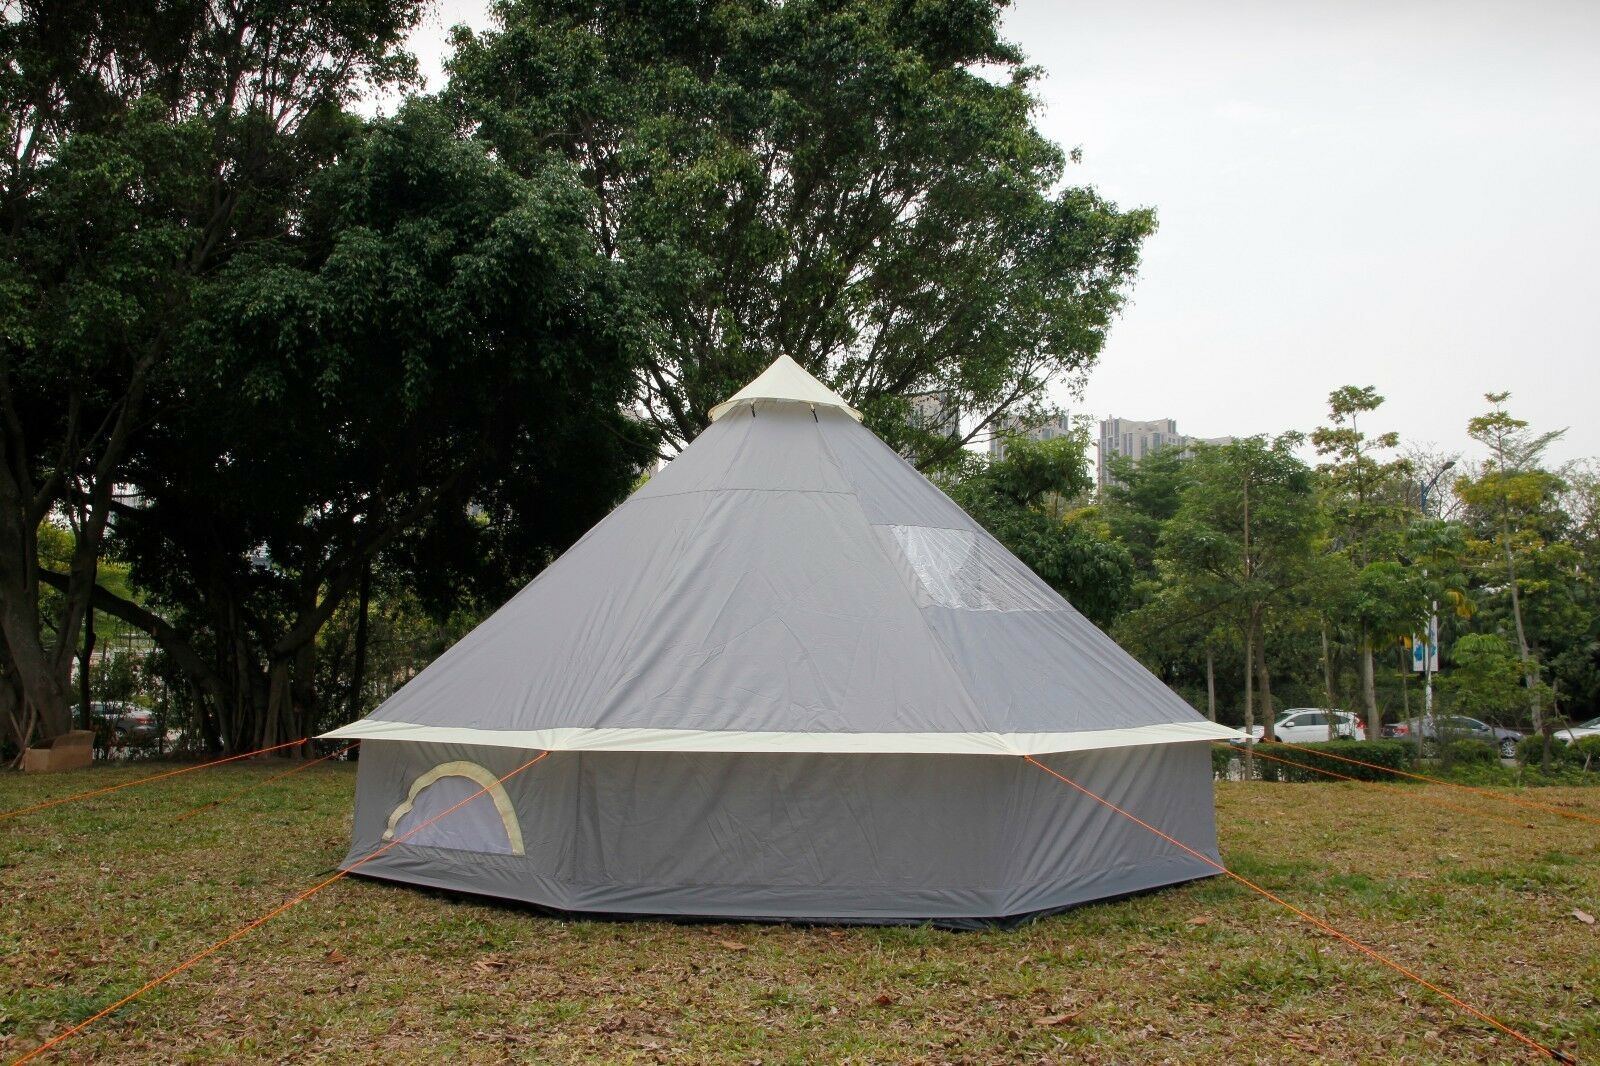 5m Bell Tent Pyramid round  Tent Grey With Zipped In Ground Sheet water proof